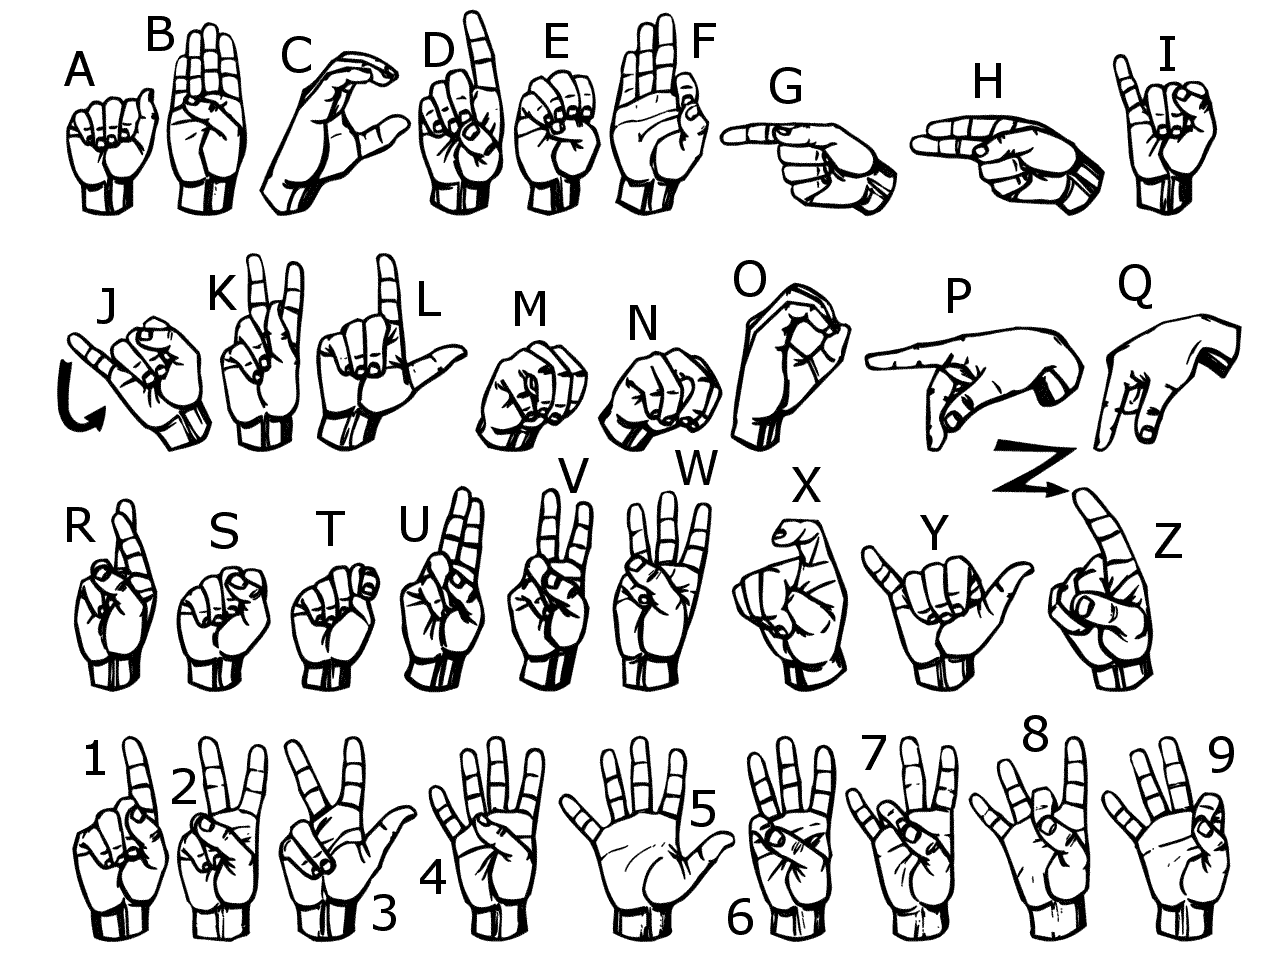 Students who learn ASL in school have the opportunity to act as the bridge between the hearing and deaf communities.